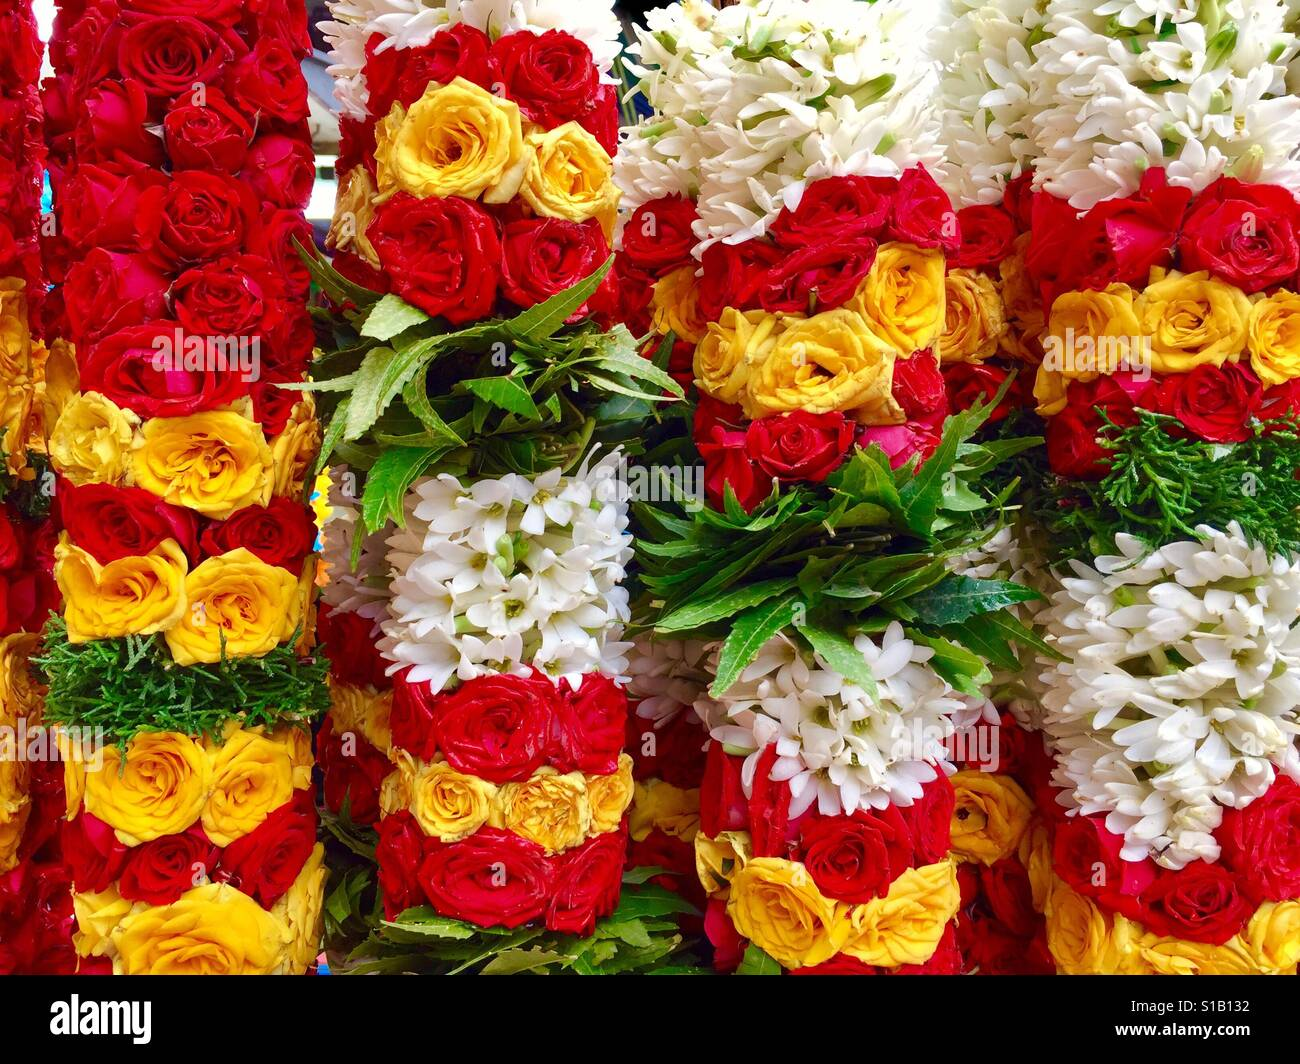 Indian fresh flower garlands, Little India, Singapore - Stock Image